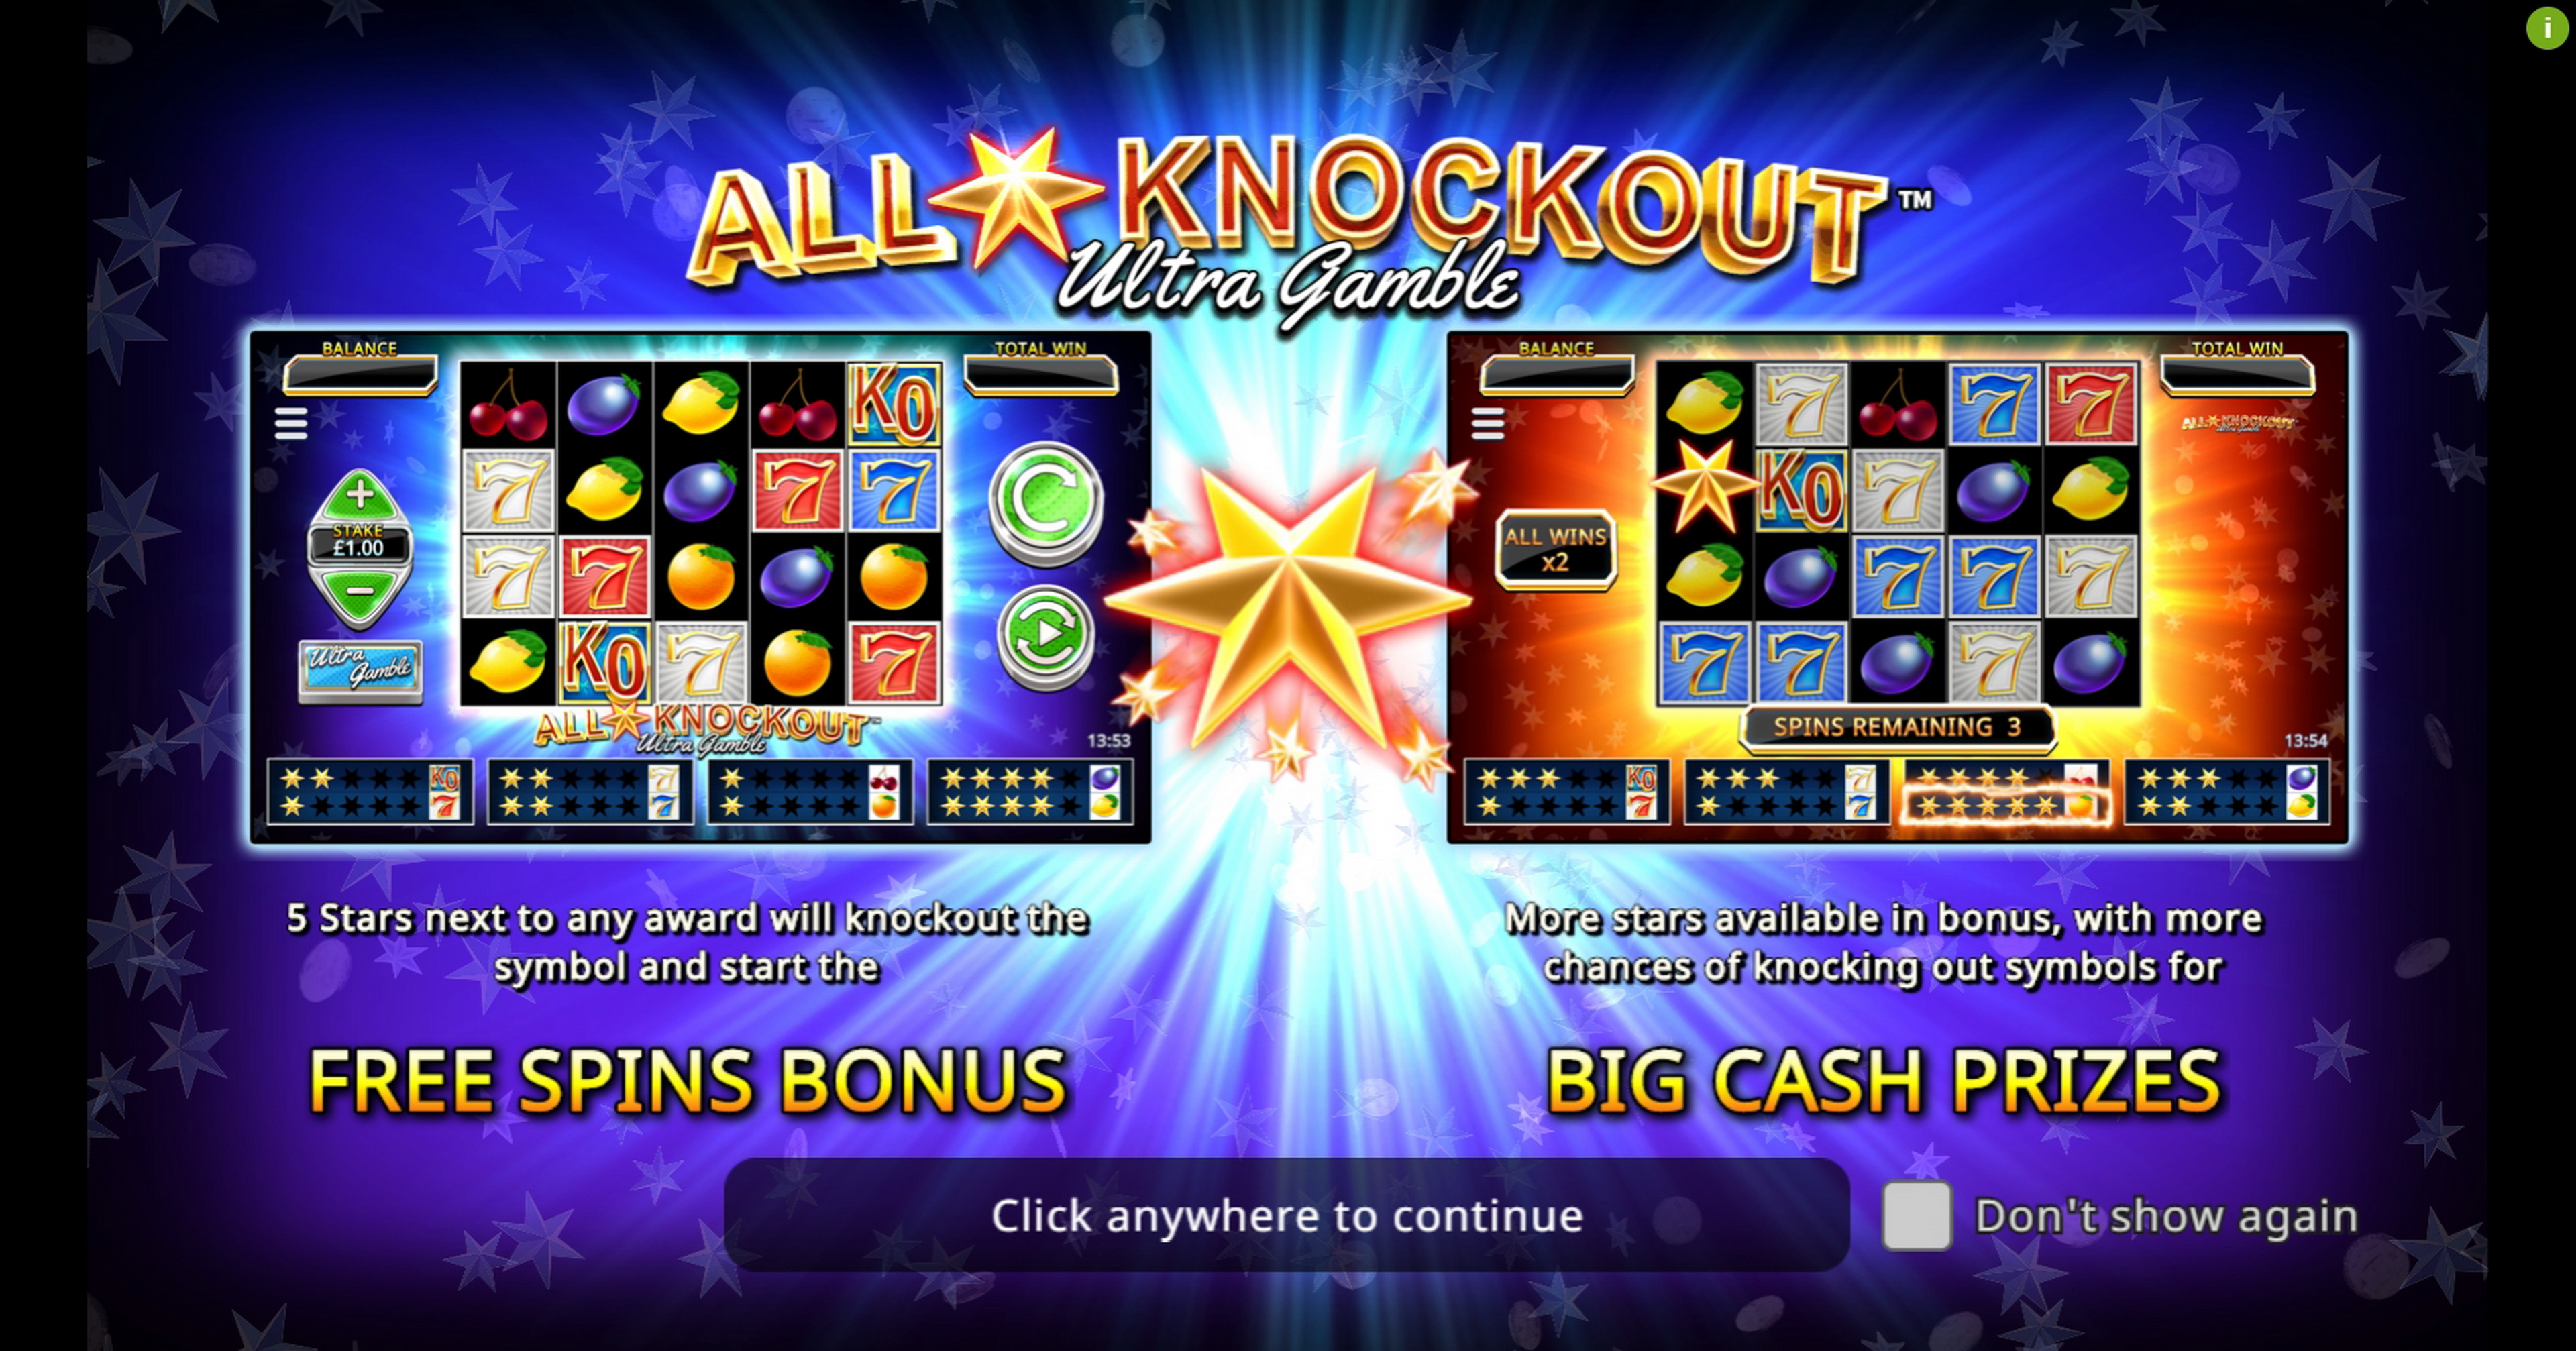 Play All Star Knockout Ultra Gamble Free Casino Slot Game by Northern Lights Gaming